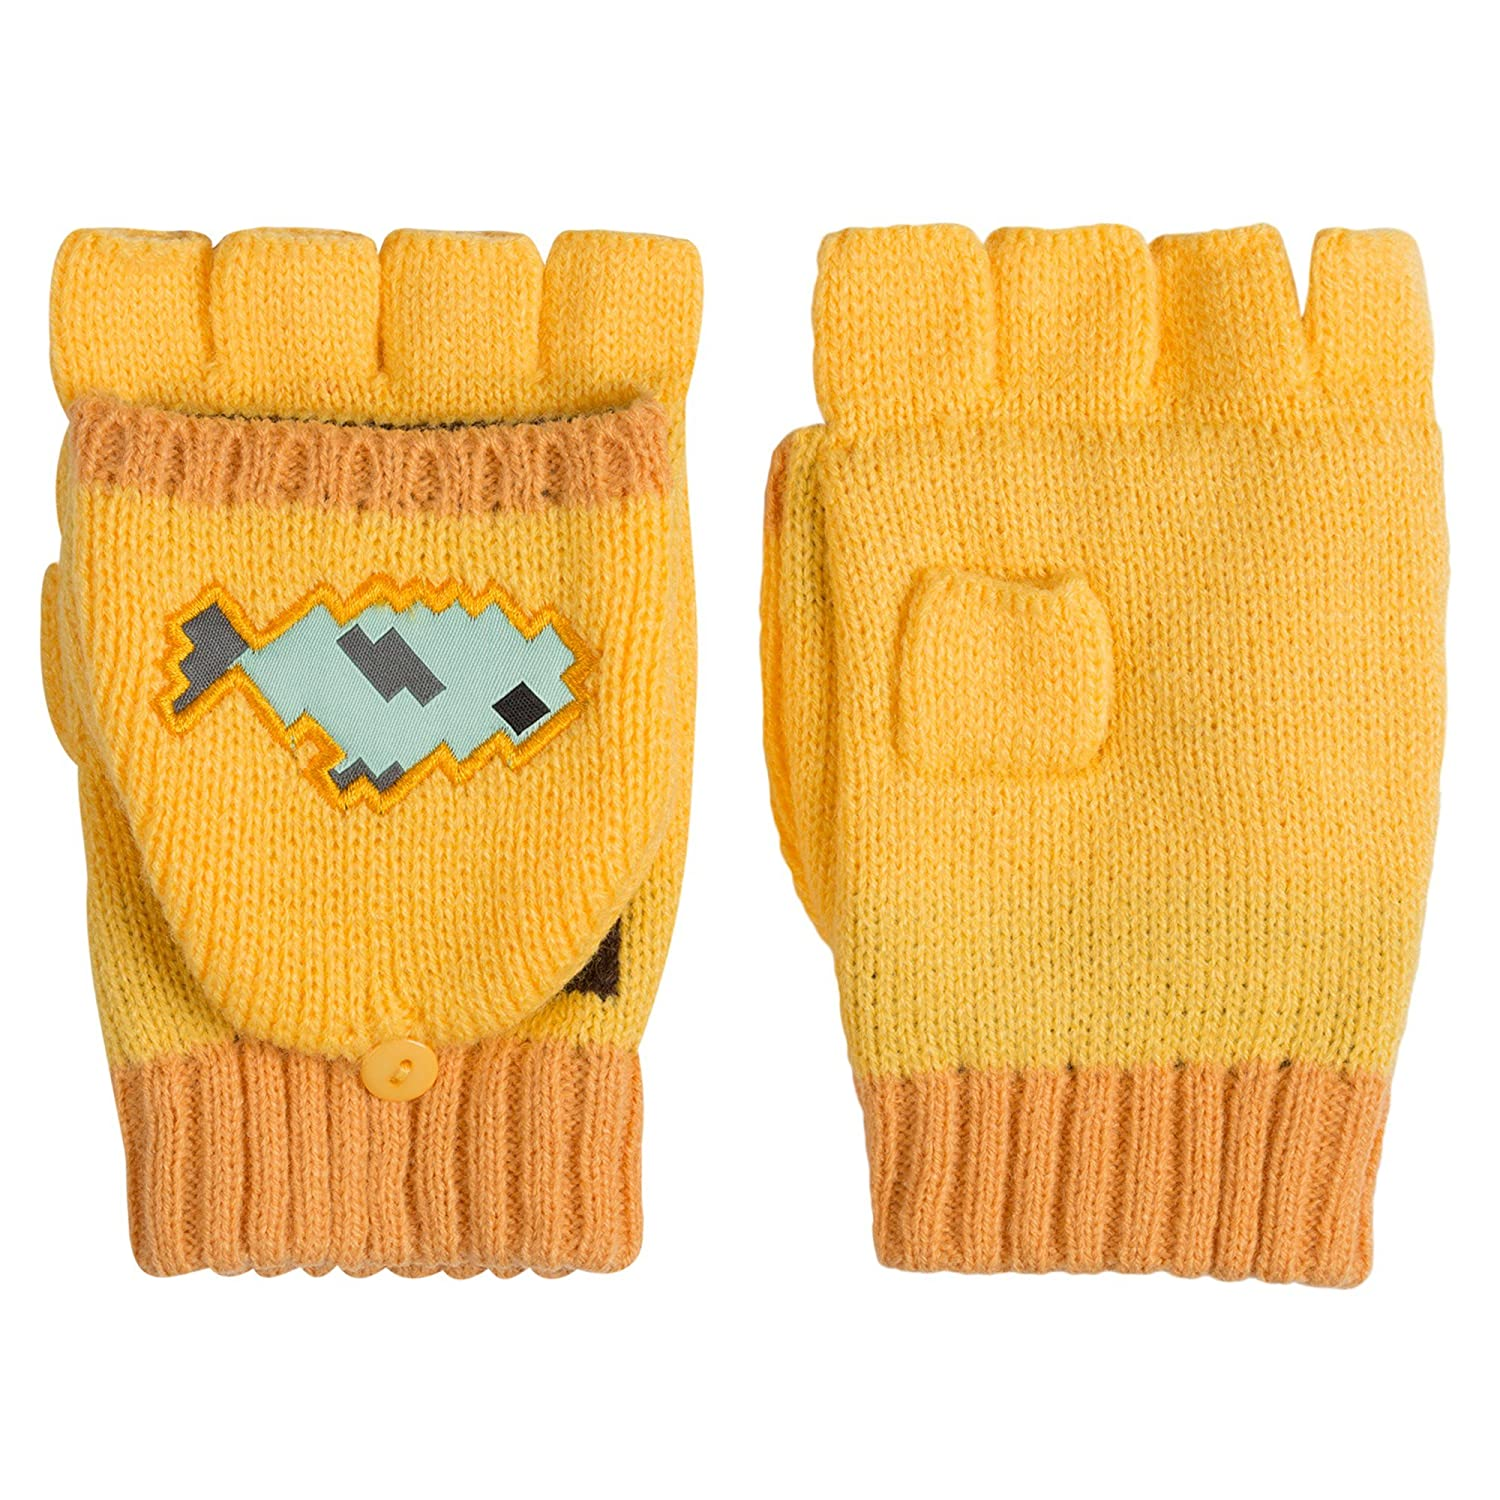 Official Minecraft - Ocelot - Mittens in Yellow J!NX MJMC-06279G-YWA-OS